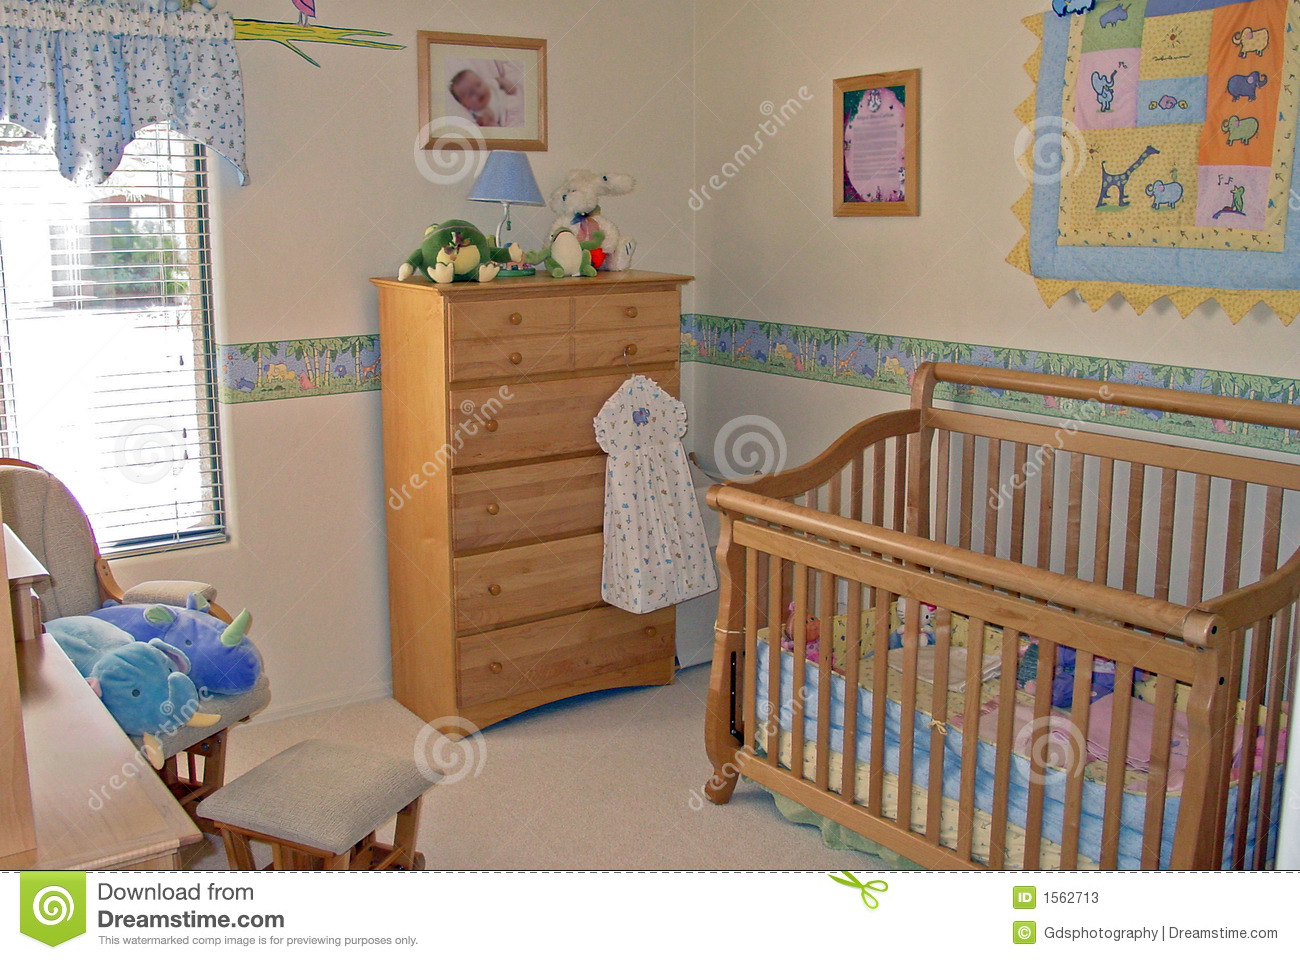 Bedroom Baby S Room Stock Image. Image Of Rocker, Design - 1562713